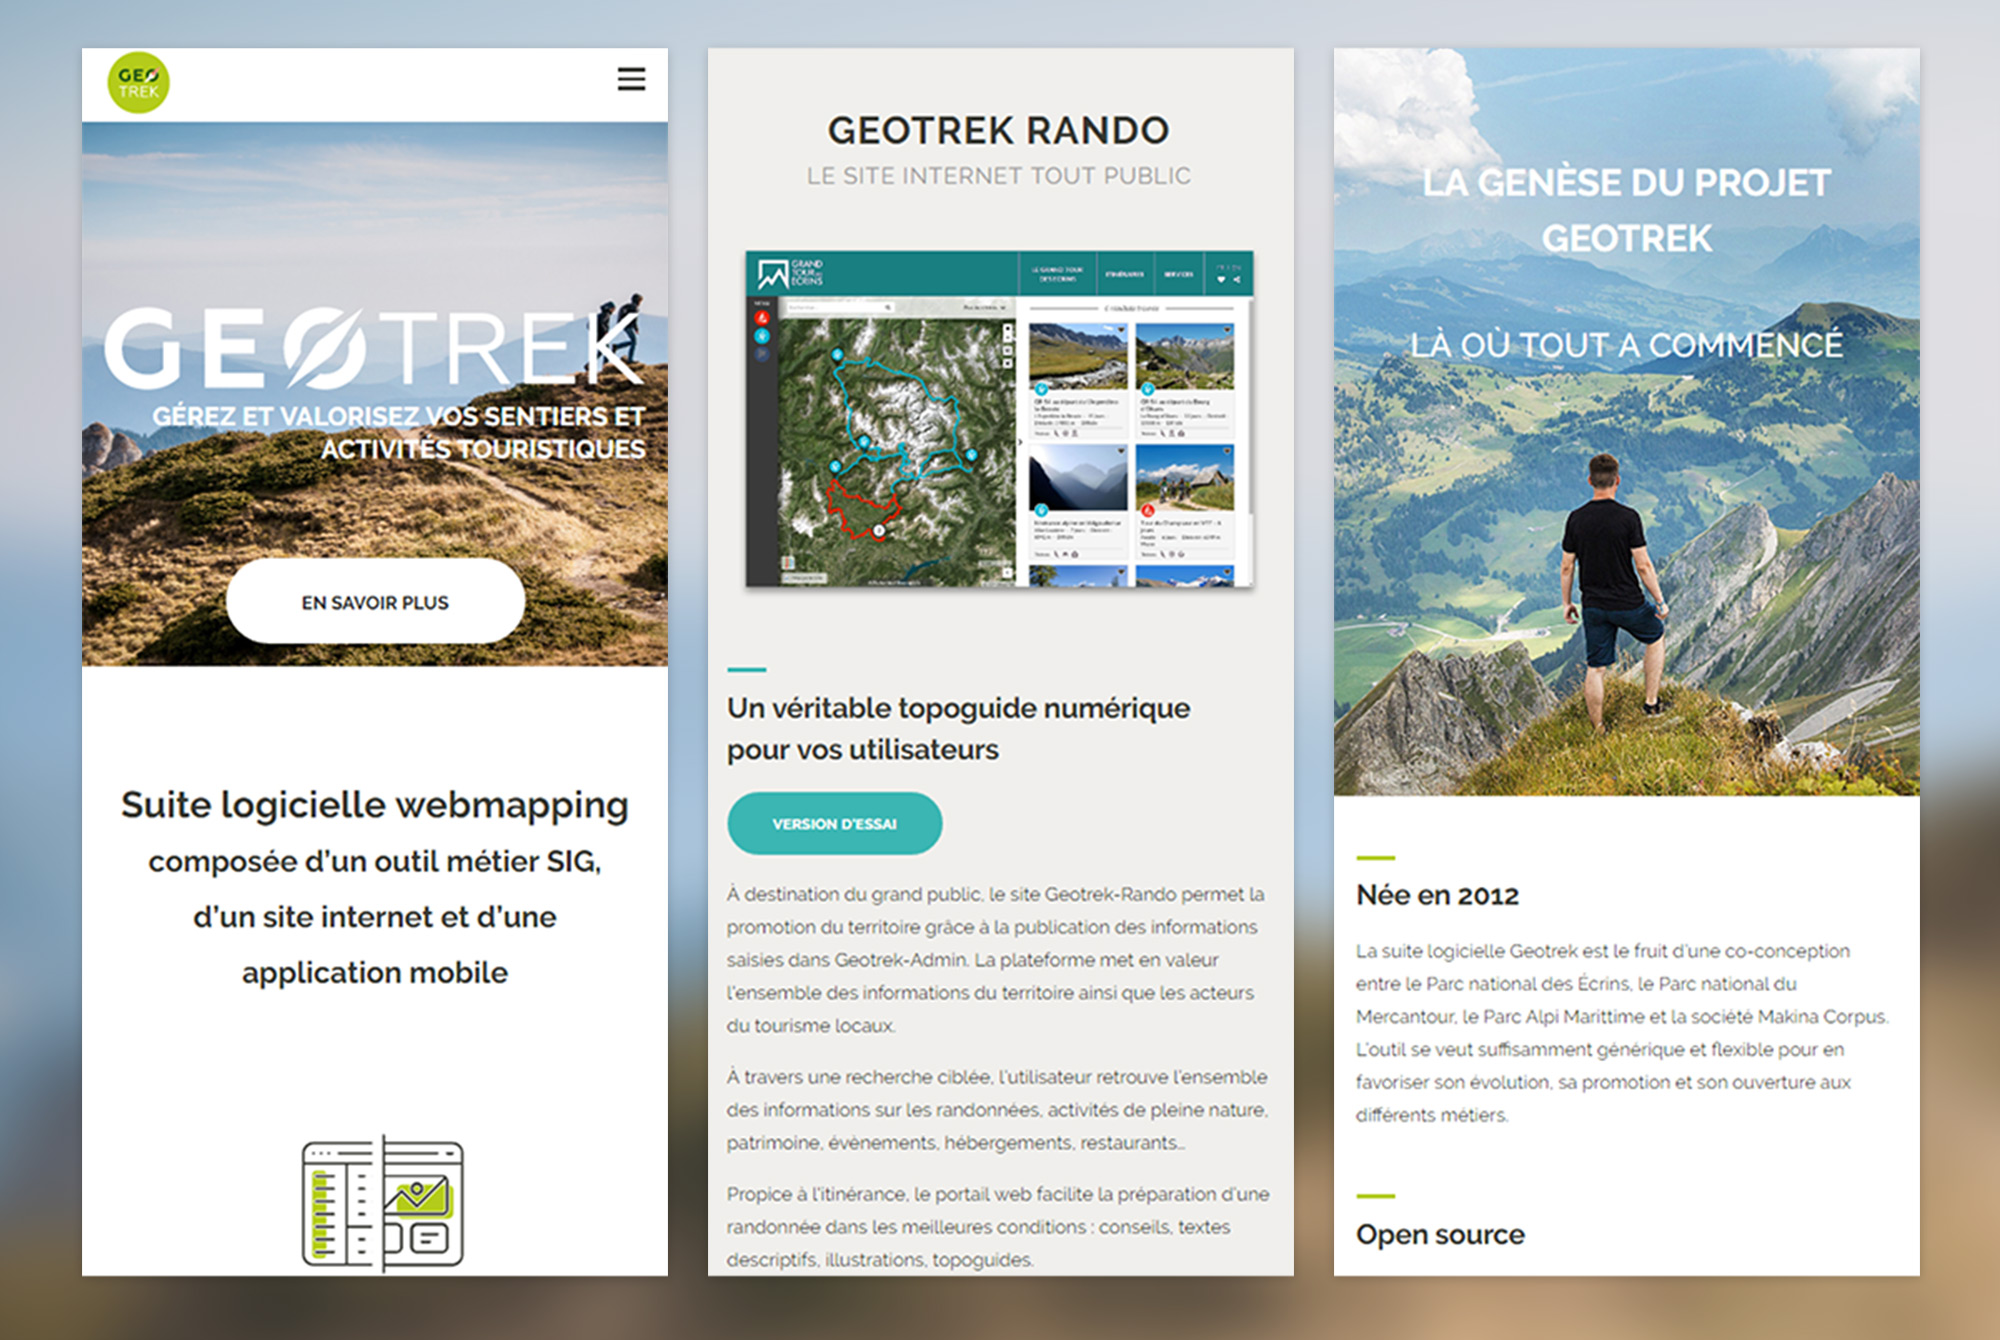 geotrek-website-mobile